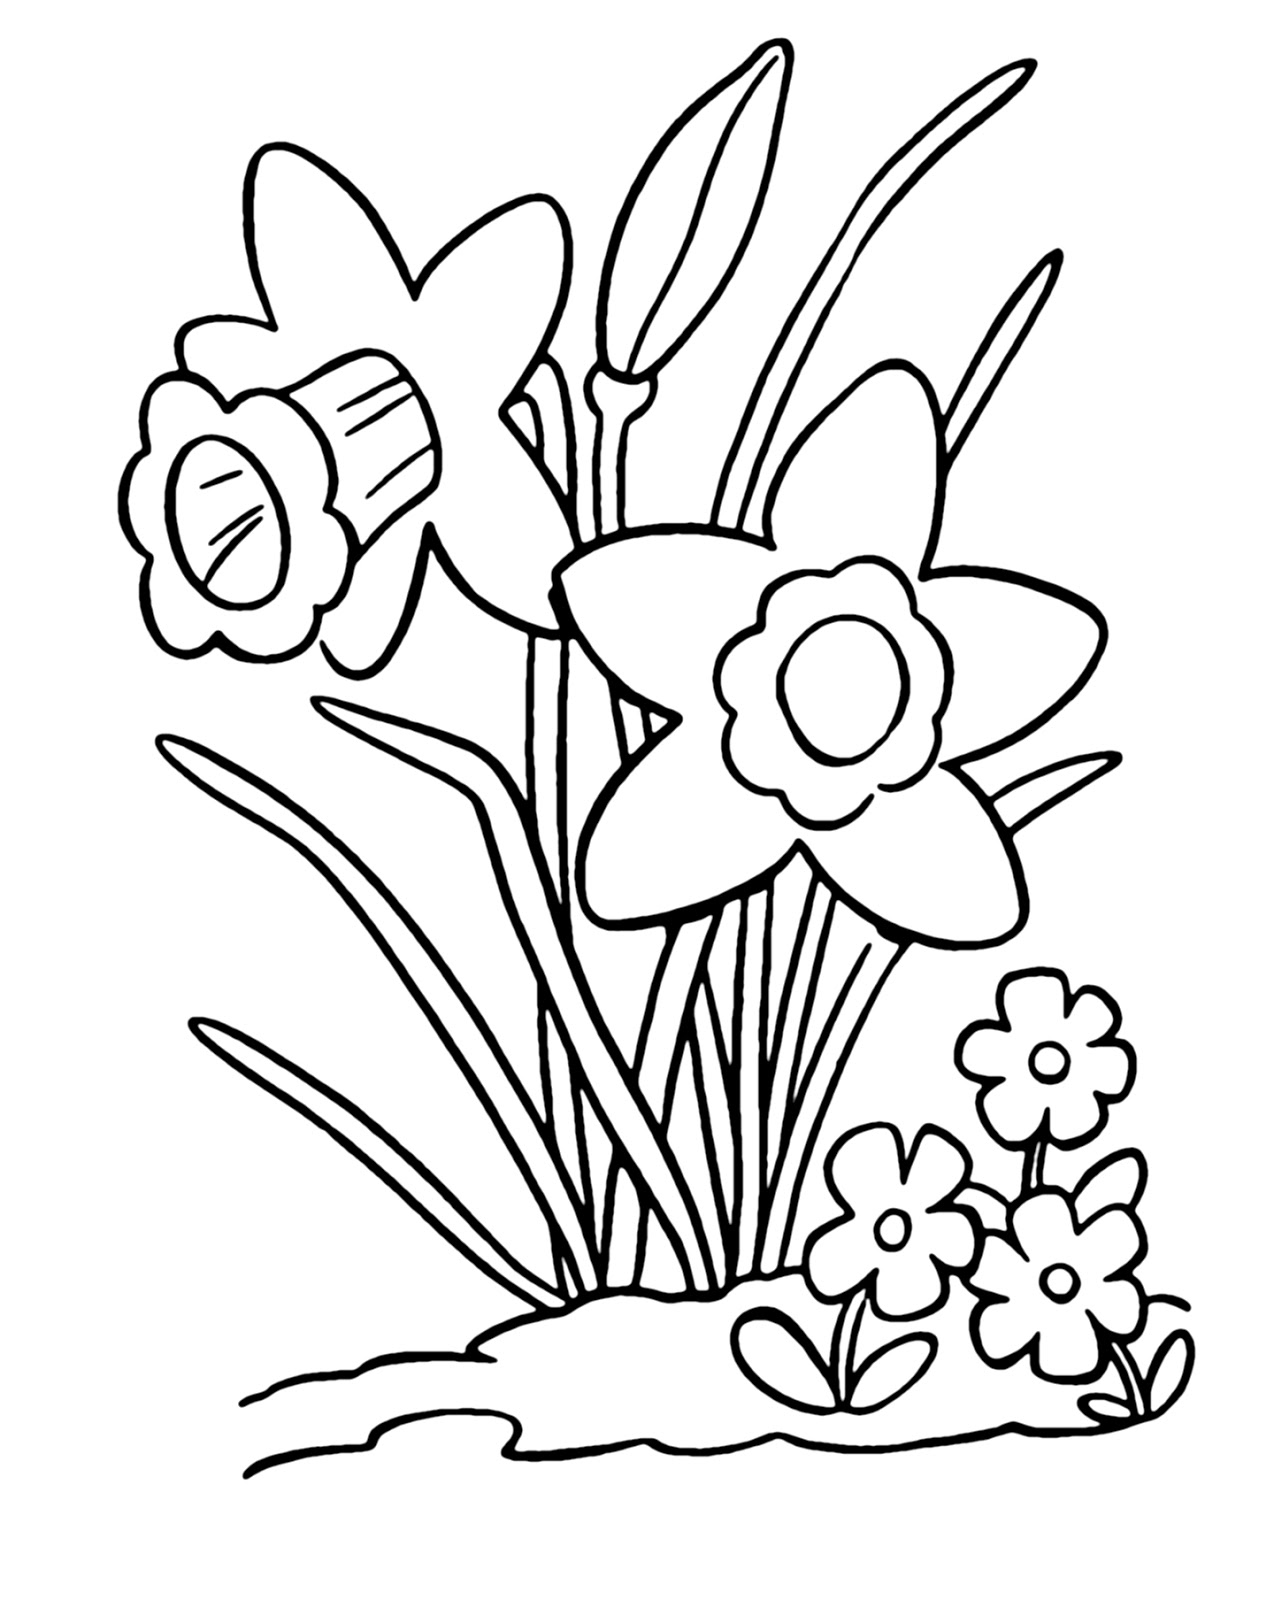 Daffodils Coloring Pages